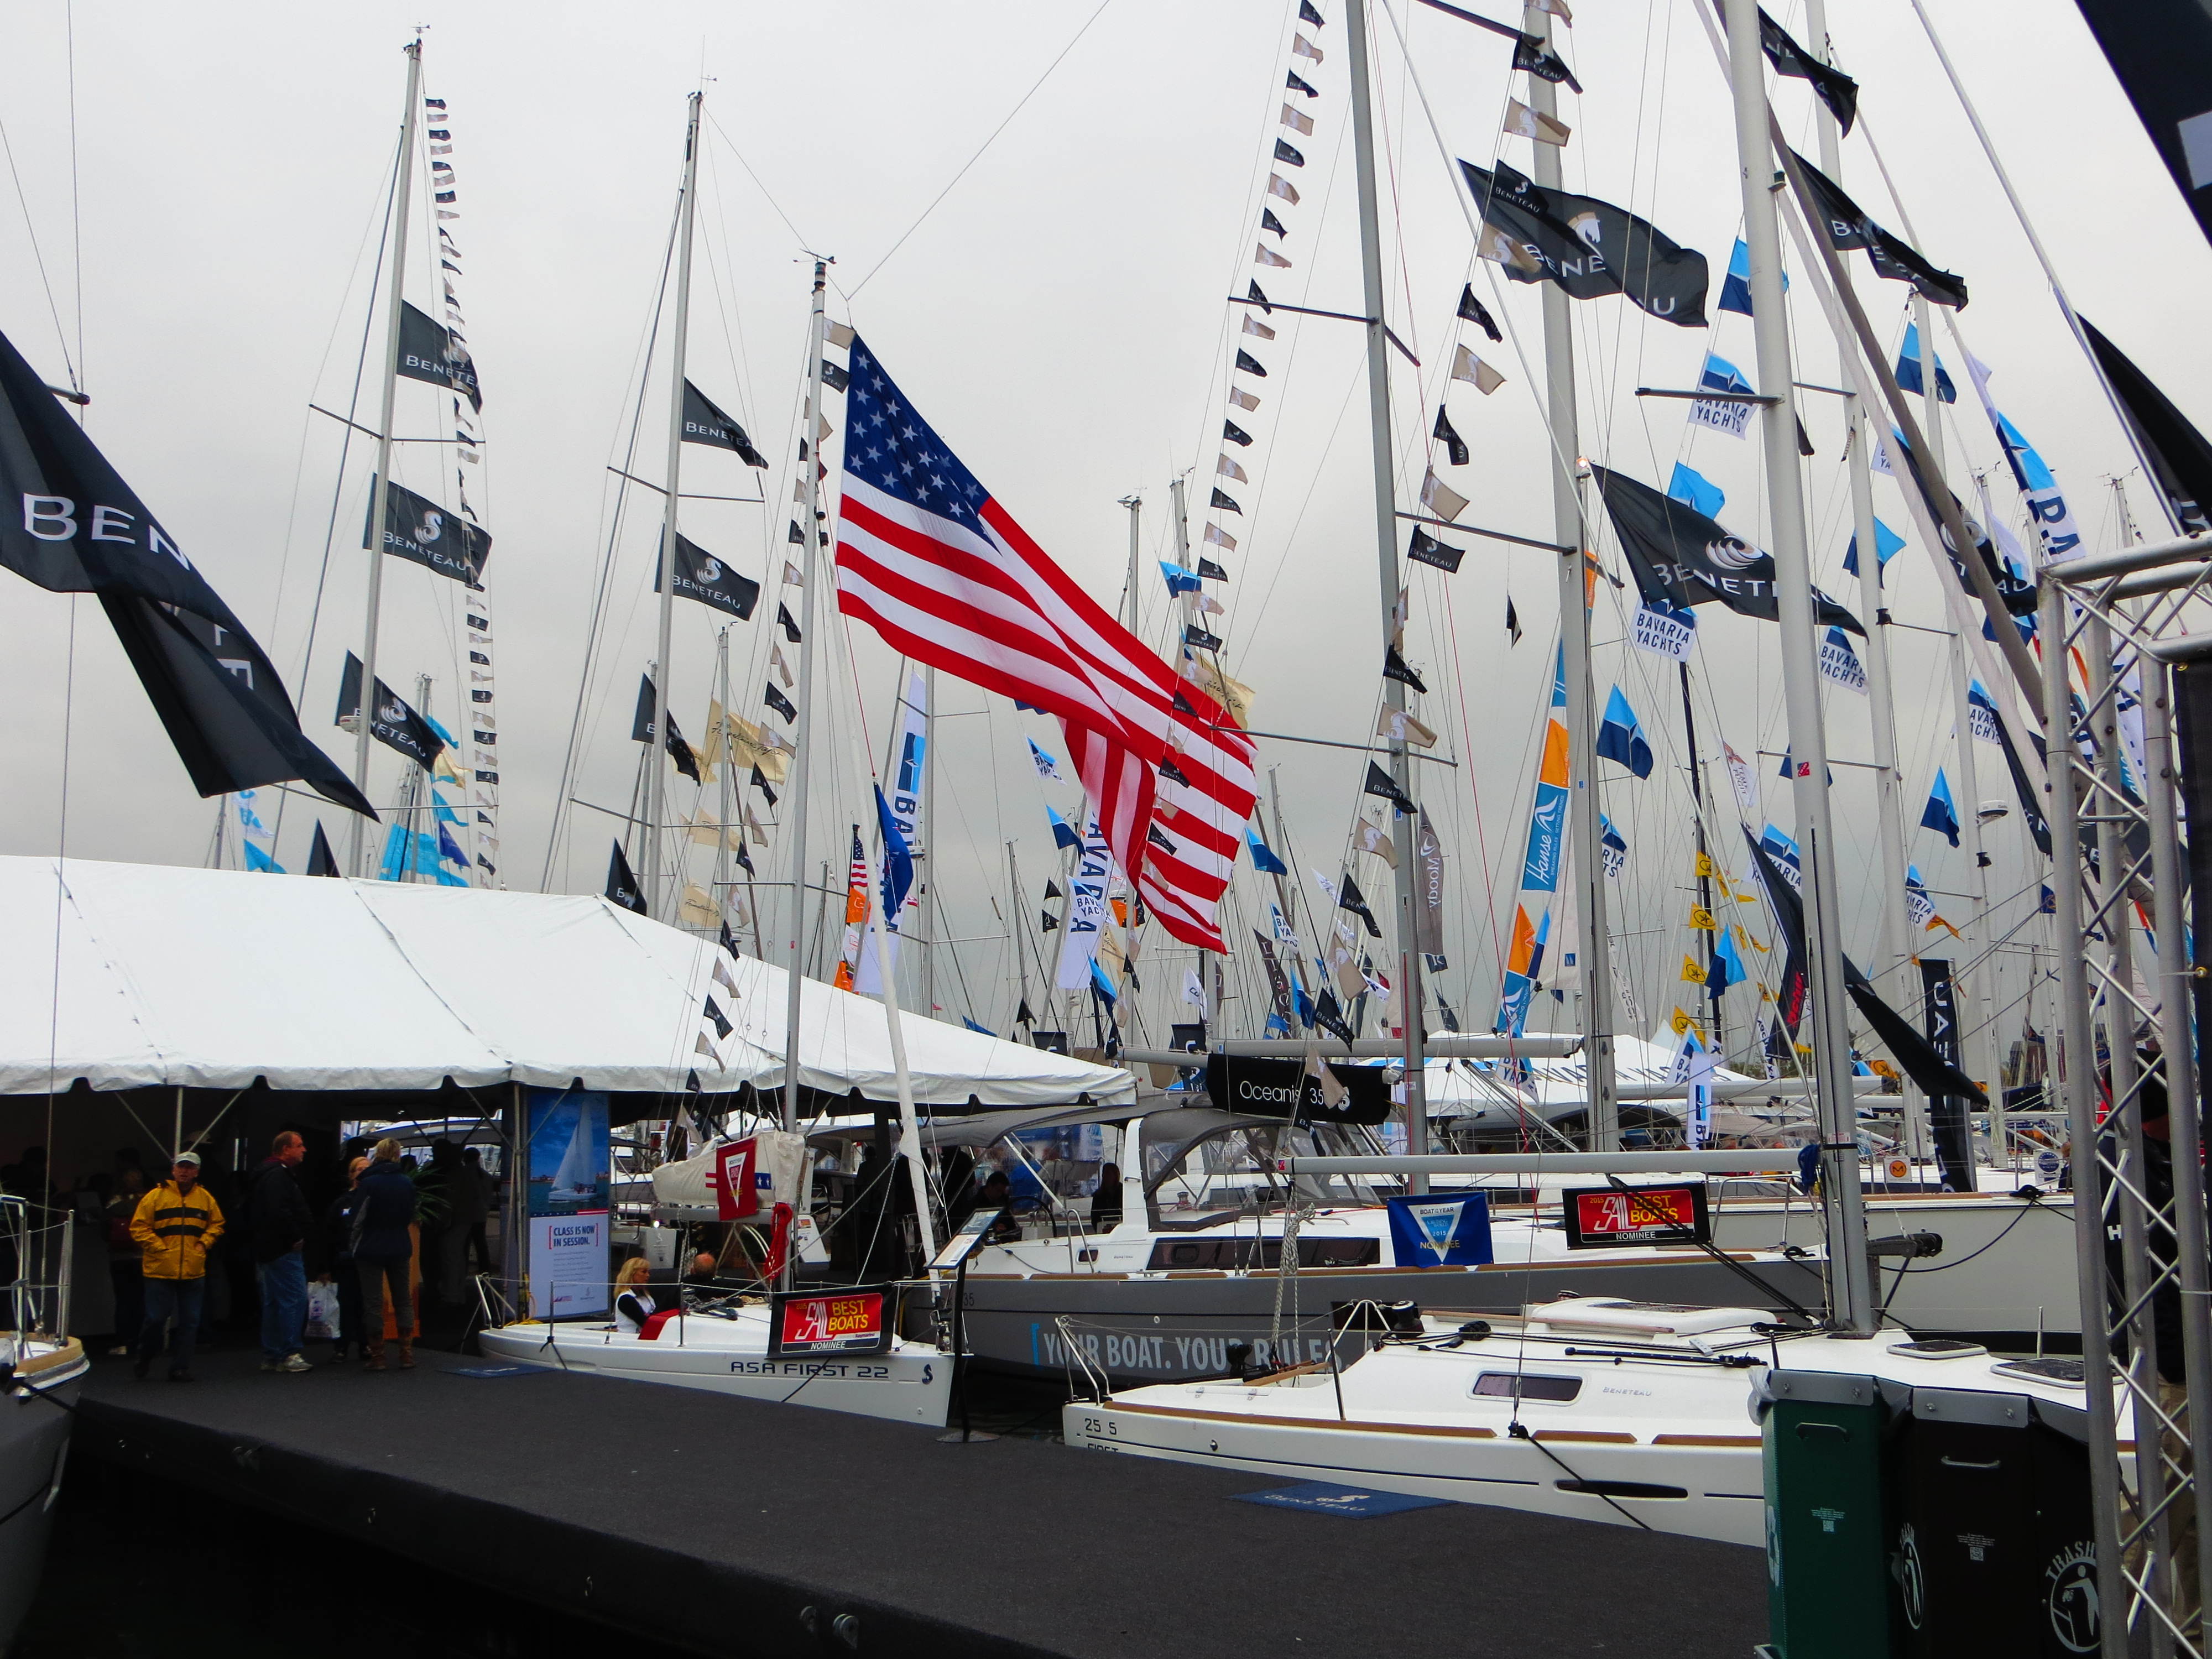 The Annapolis Boat Show